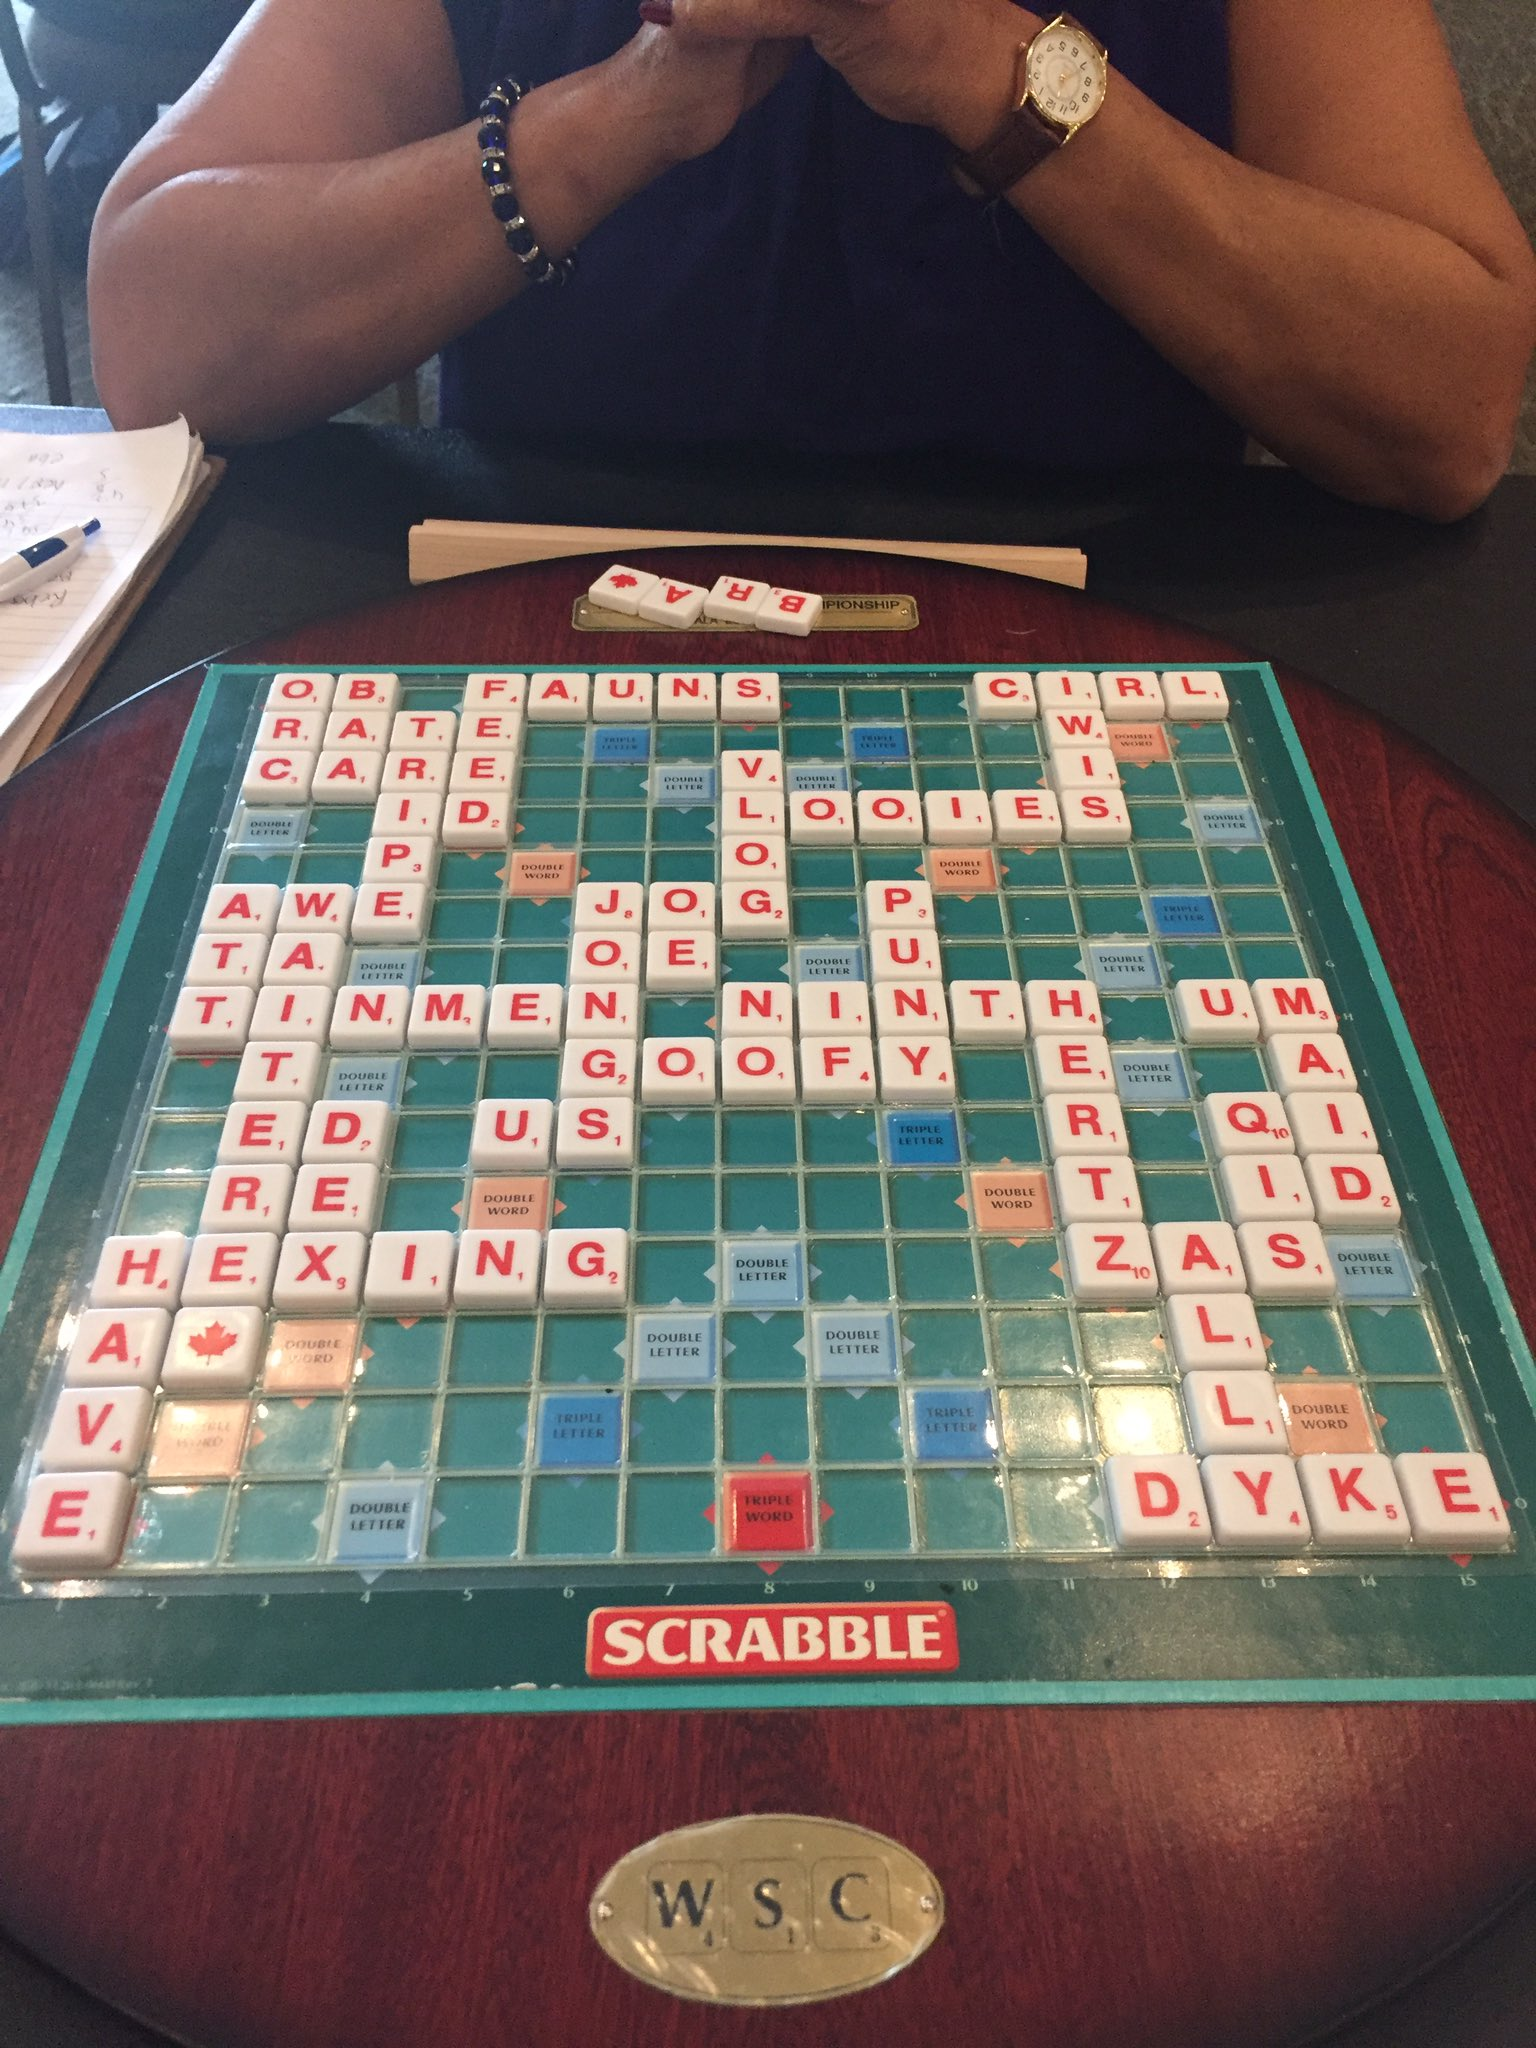 #niagarascrabble2017 R19: Yvonne Lobo 414 Andy Saunders 376 #scrabble https://t.co/OL7v6SeBbZ